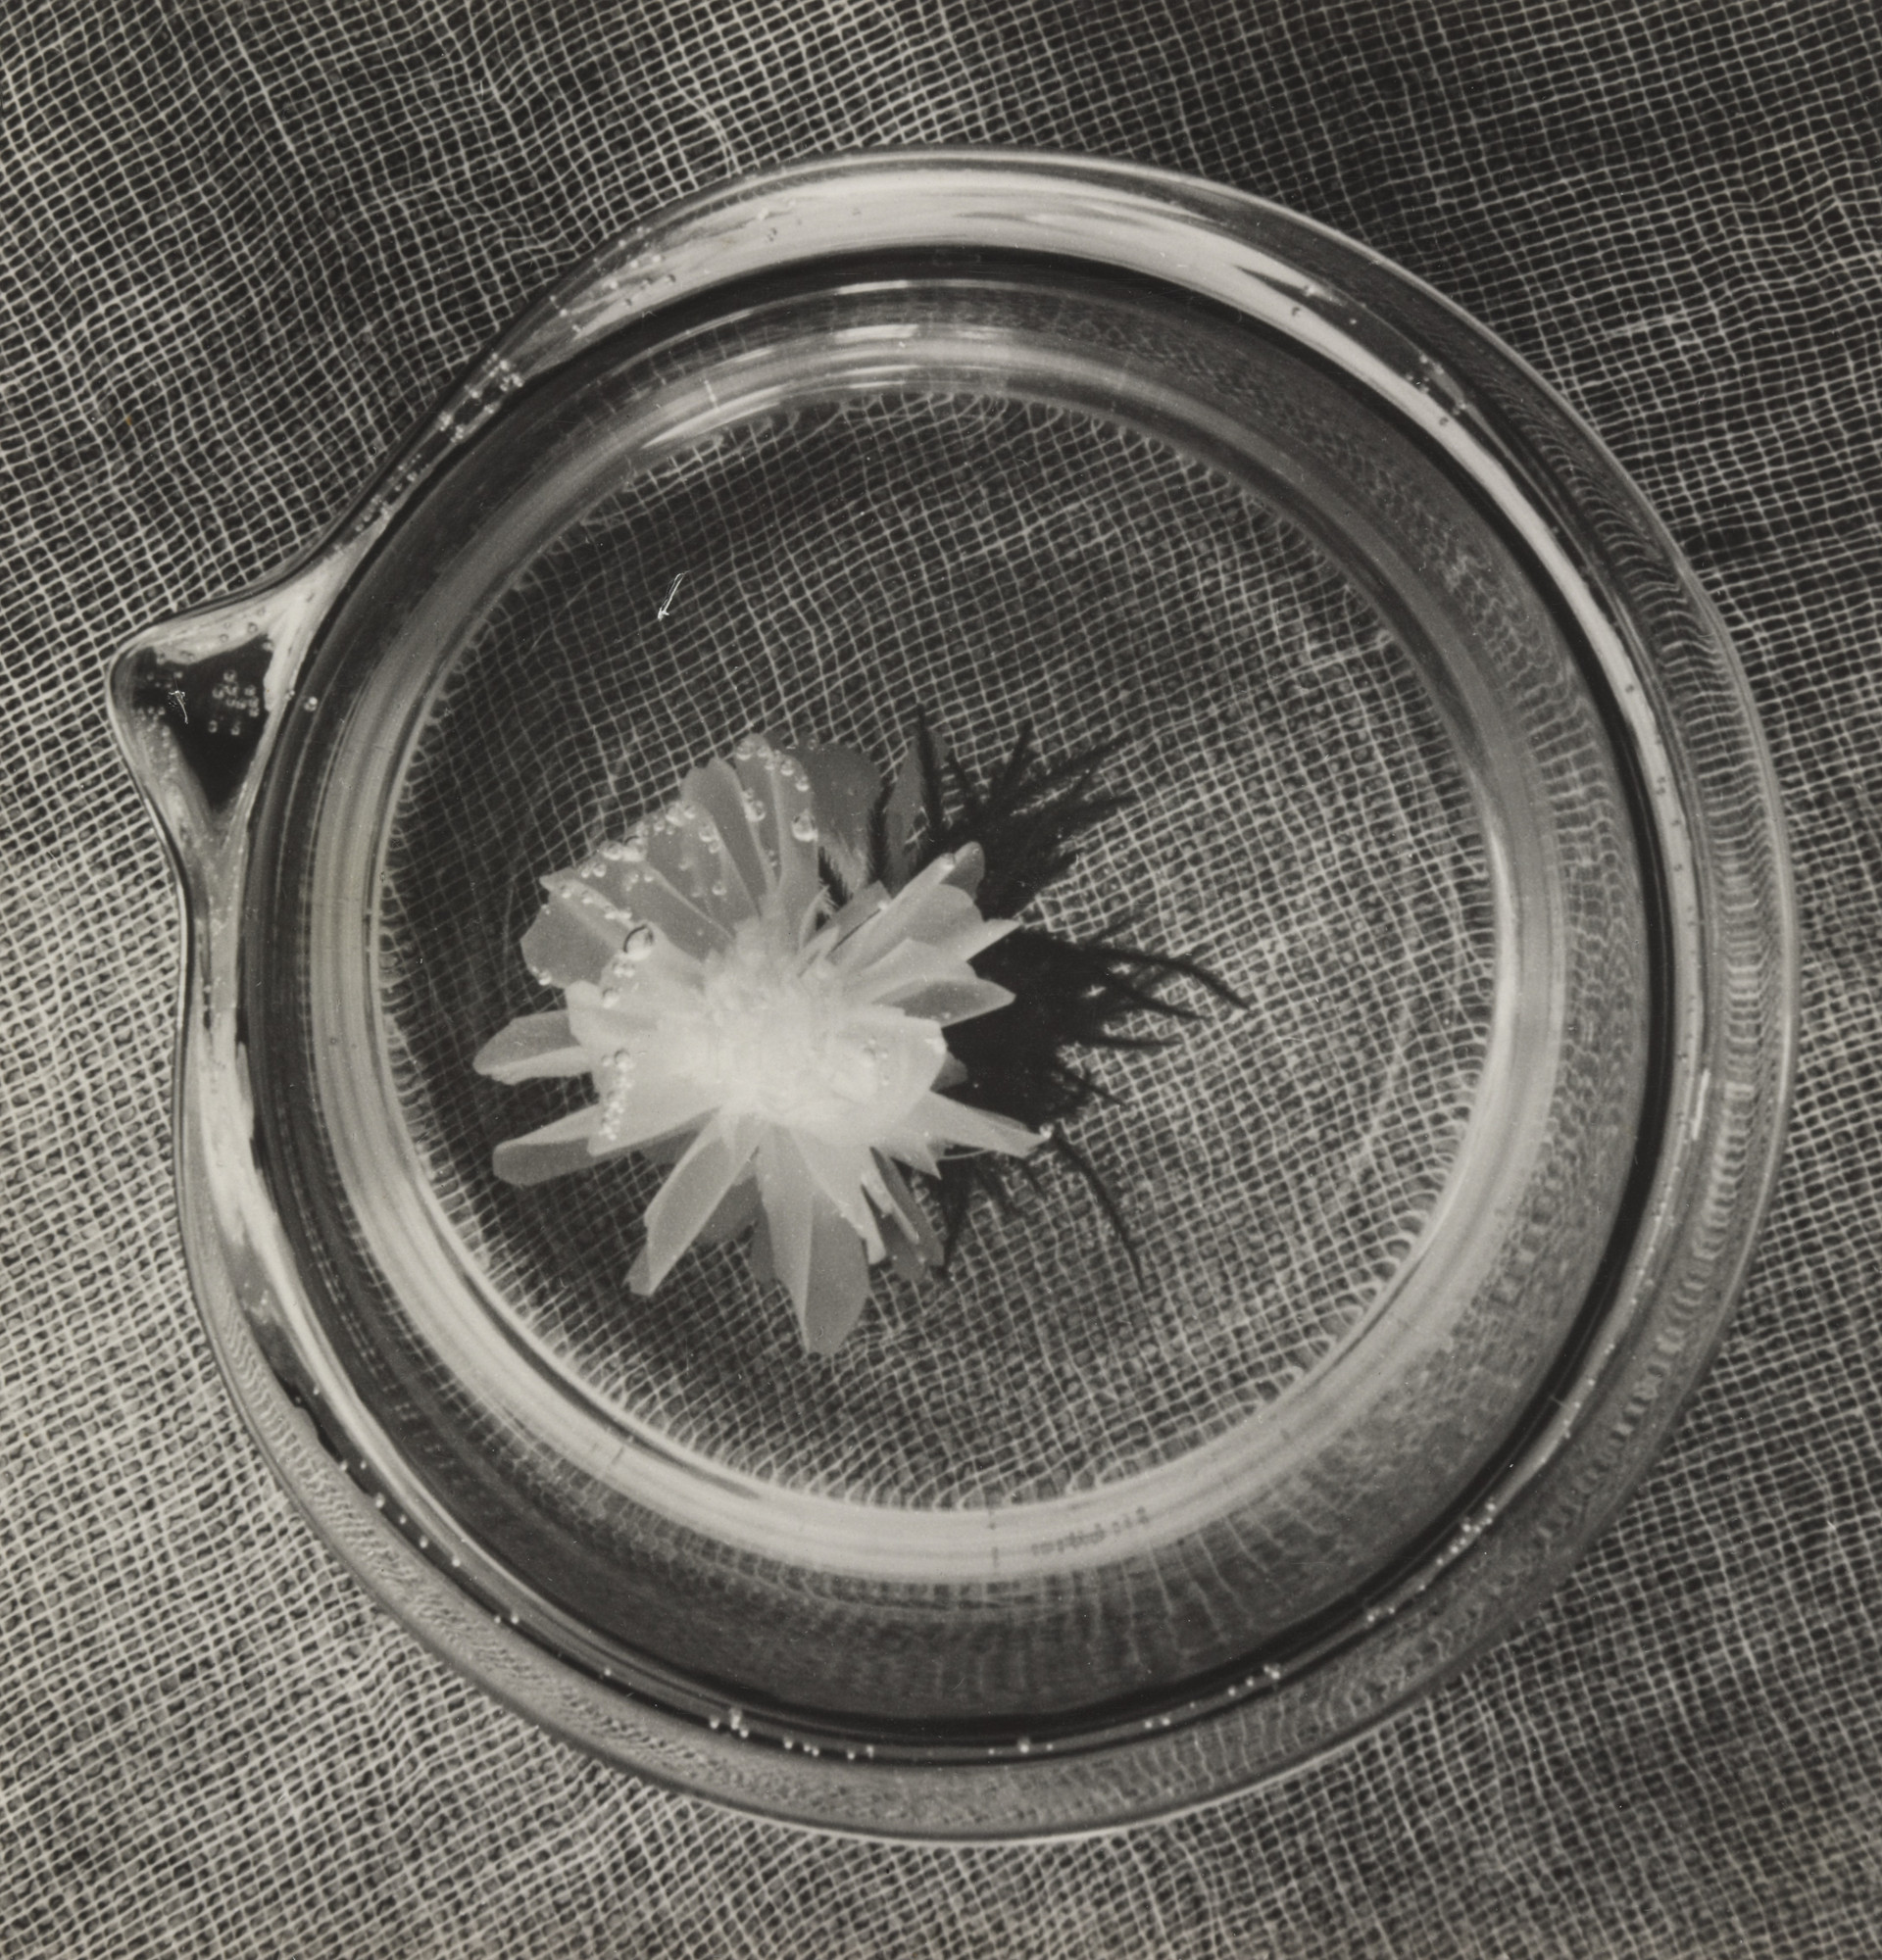 Horacio Coppola. Japanese Flower, Bauhaus, Berlin. November 1932